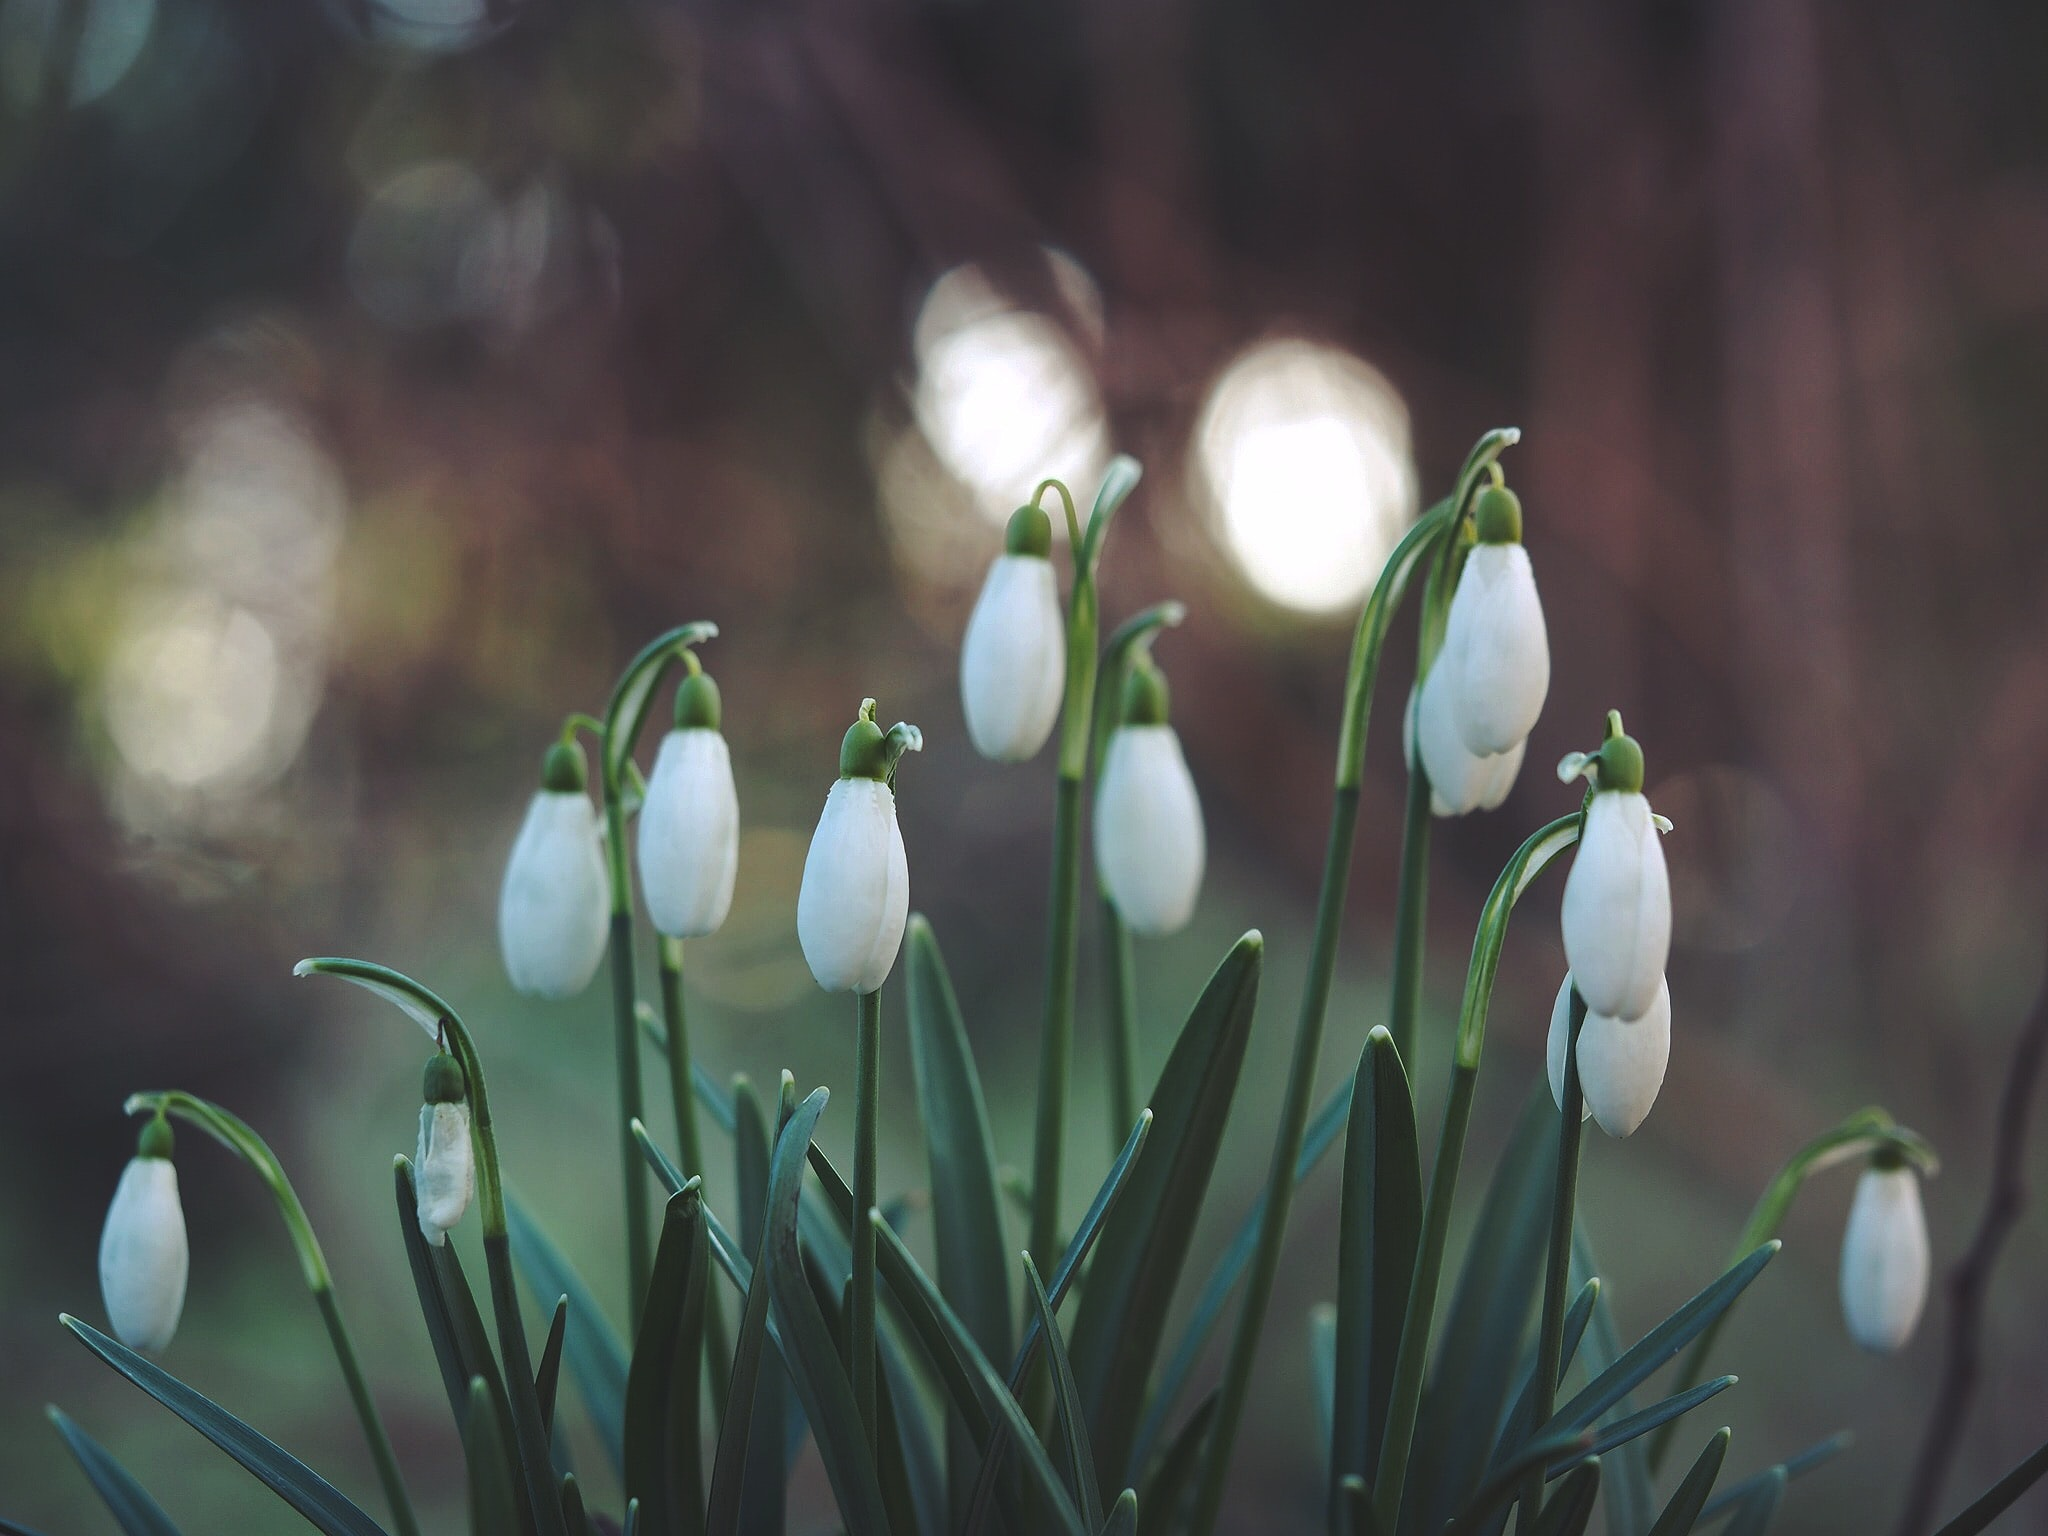 Several white snowdrop flowers blooming, growing in garden in Spring